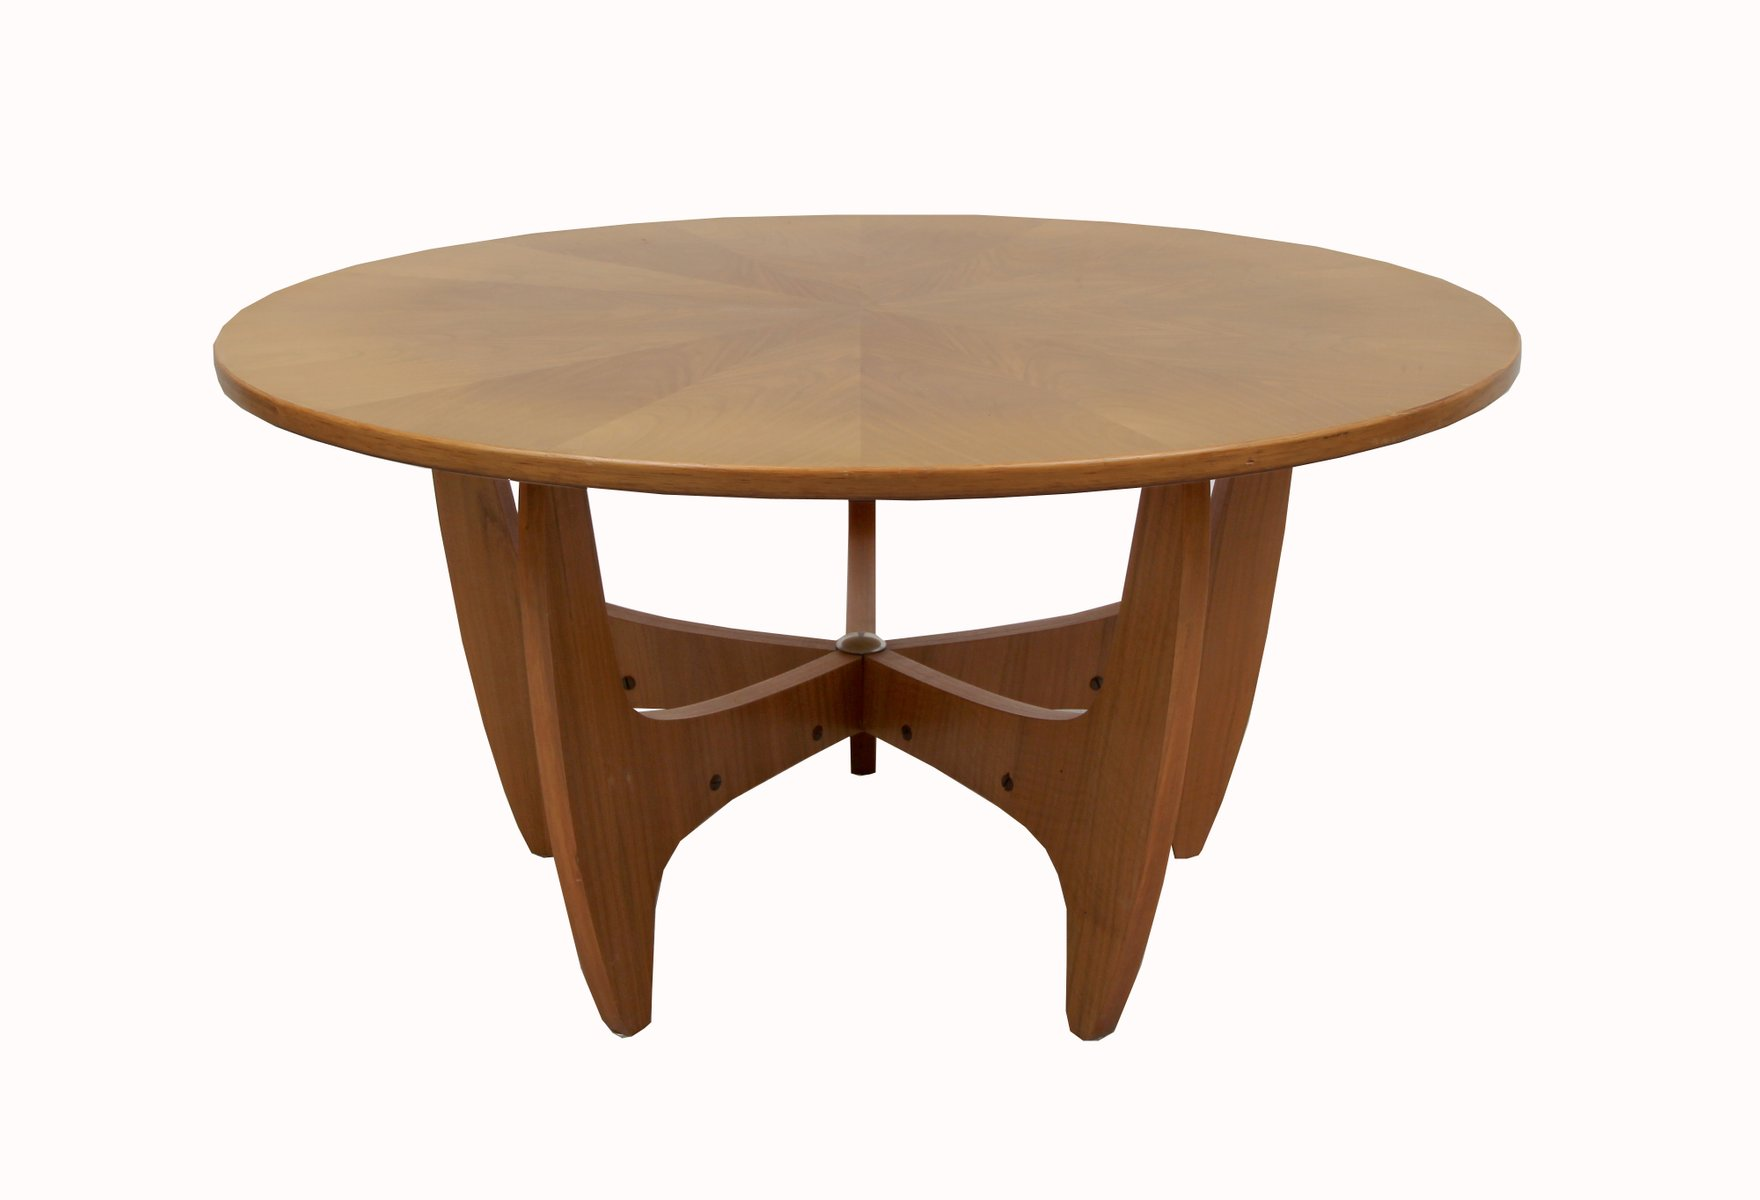 Mid century german walnut coffee table 1960s for sale at pamono mid century german walnut coffee table 1960s geotapseo Gallery